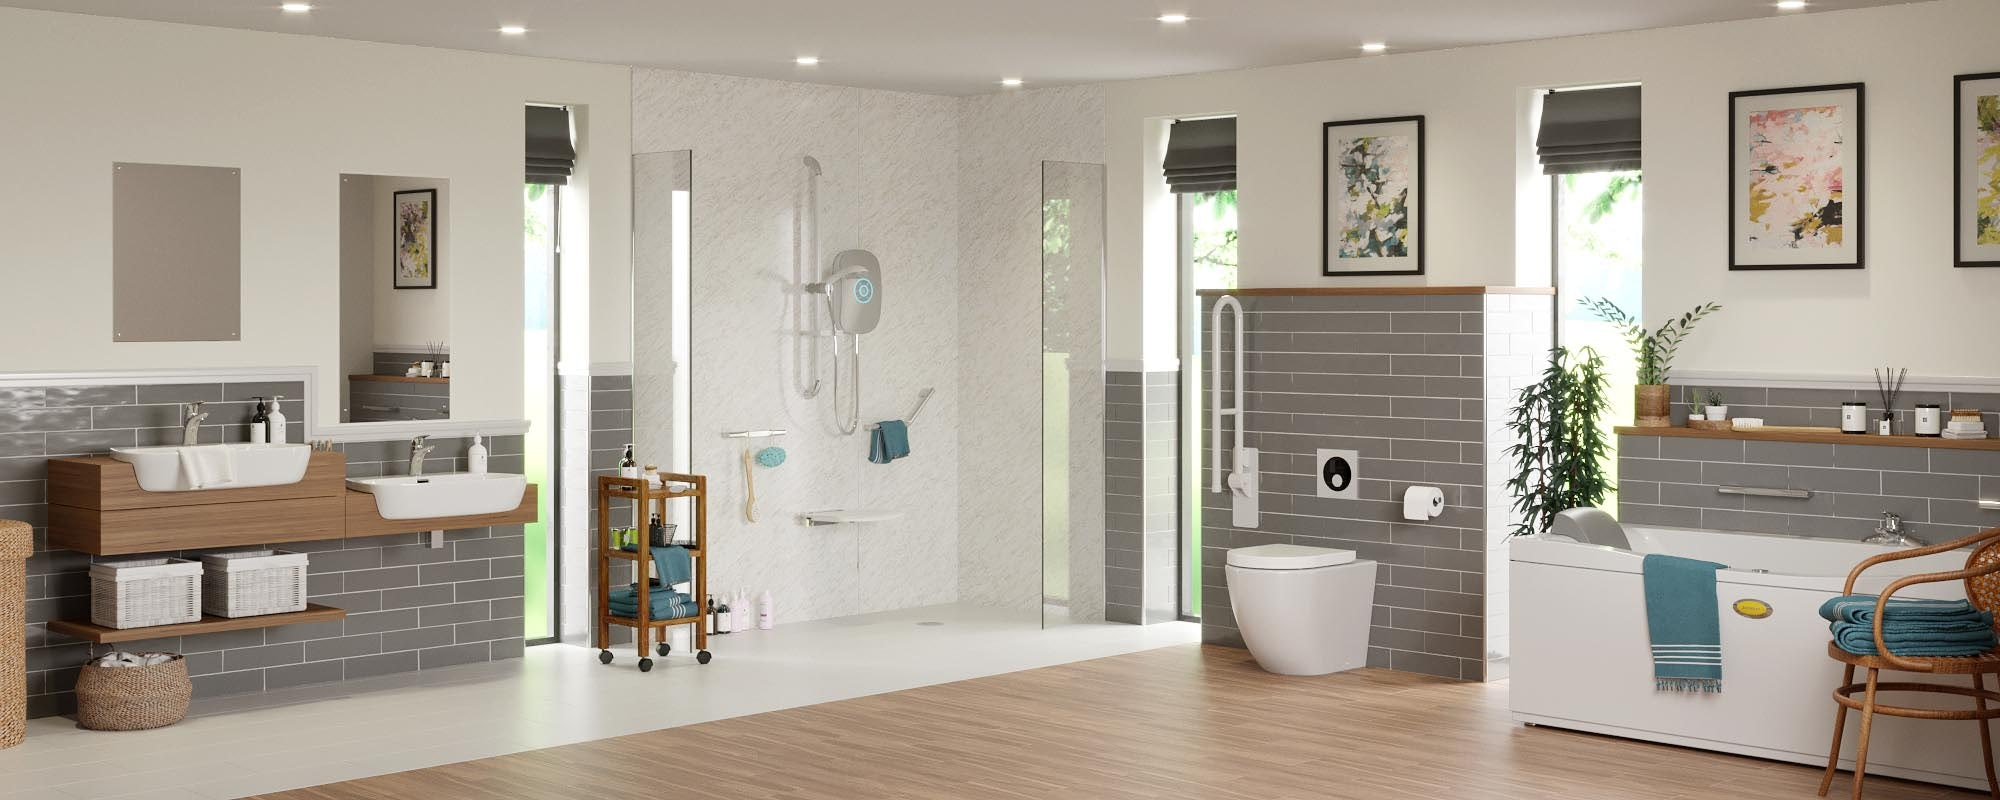 Independent Living bathroom room set 1